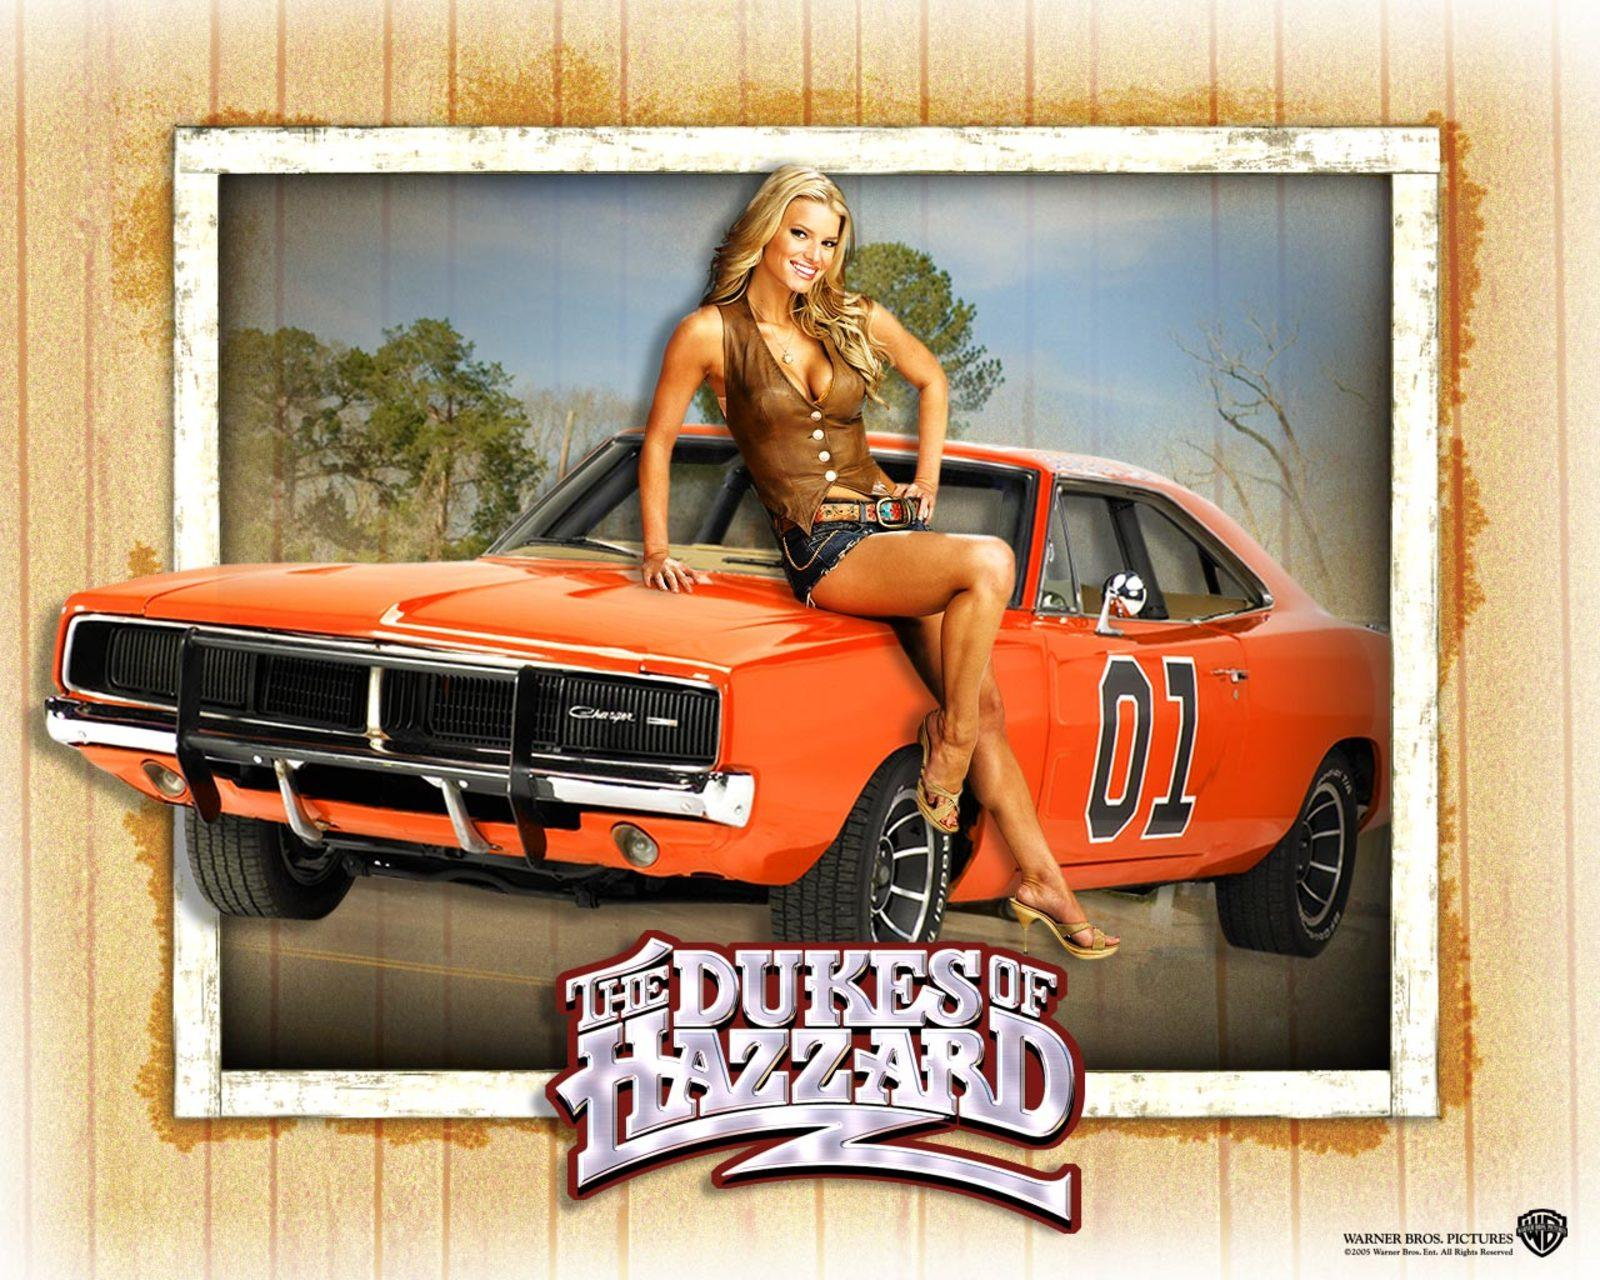 Classic Muscle Cars For Sale >> 1969 Dodge Charger - General Lee (Dukes Of Hazzard) Review - Top Speed